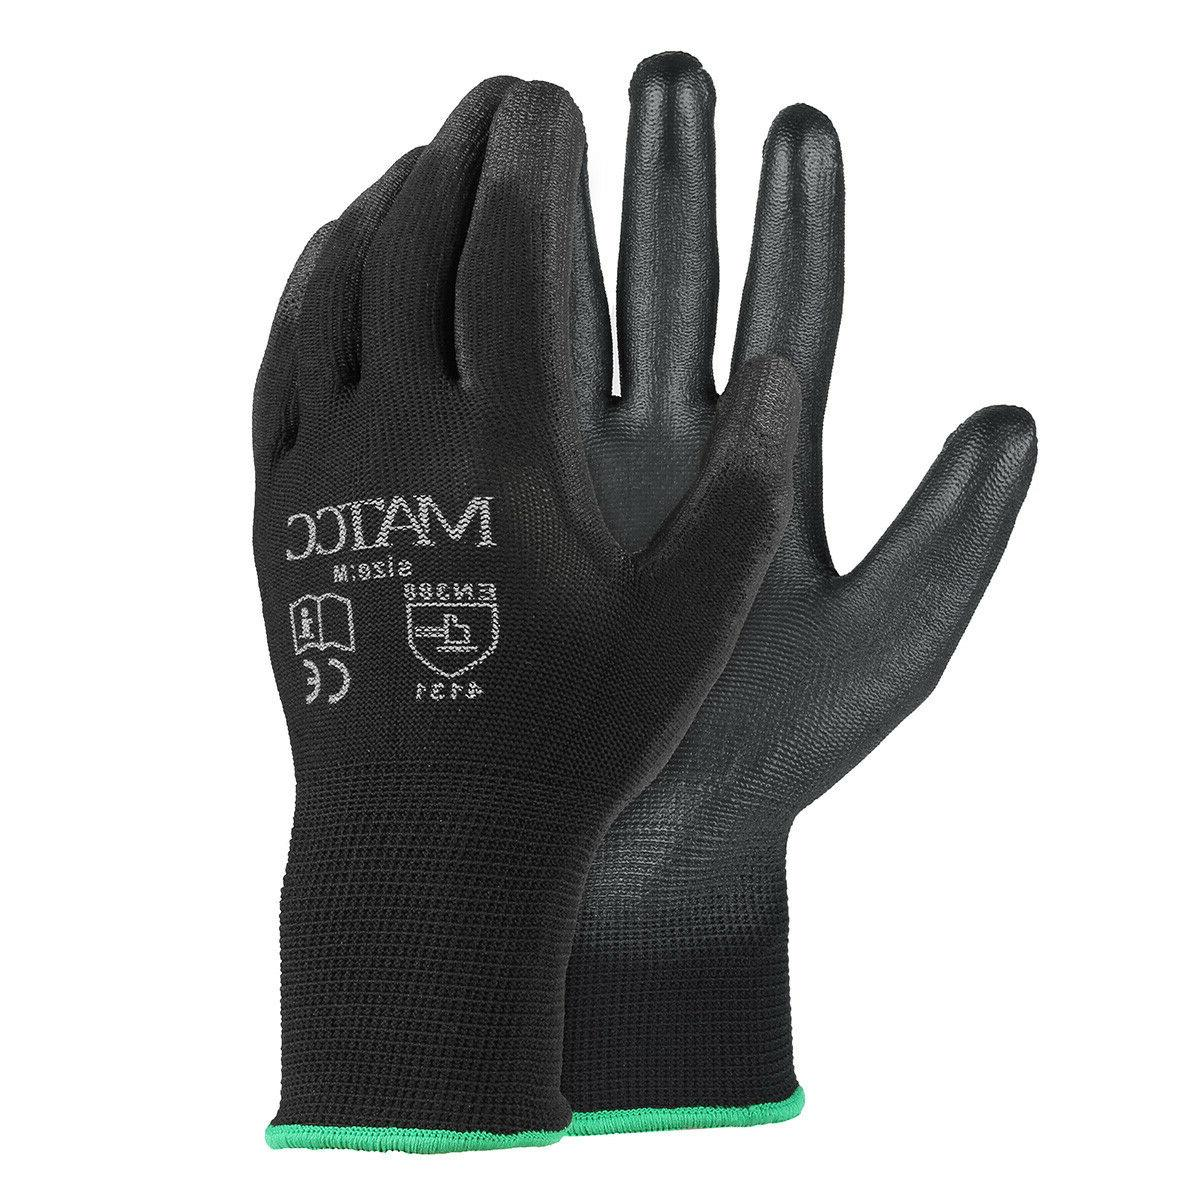 12pairs pu nitrile coated safety work gloves